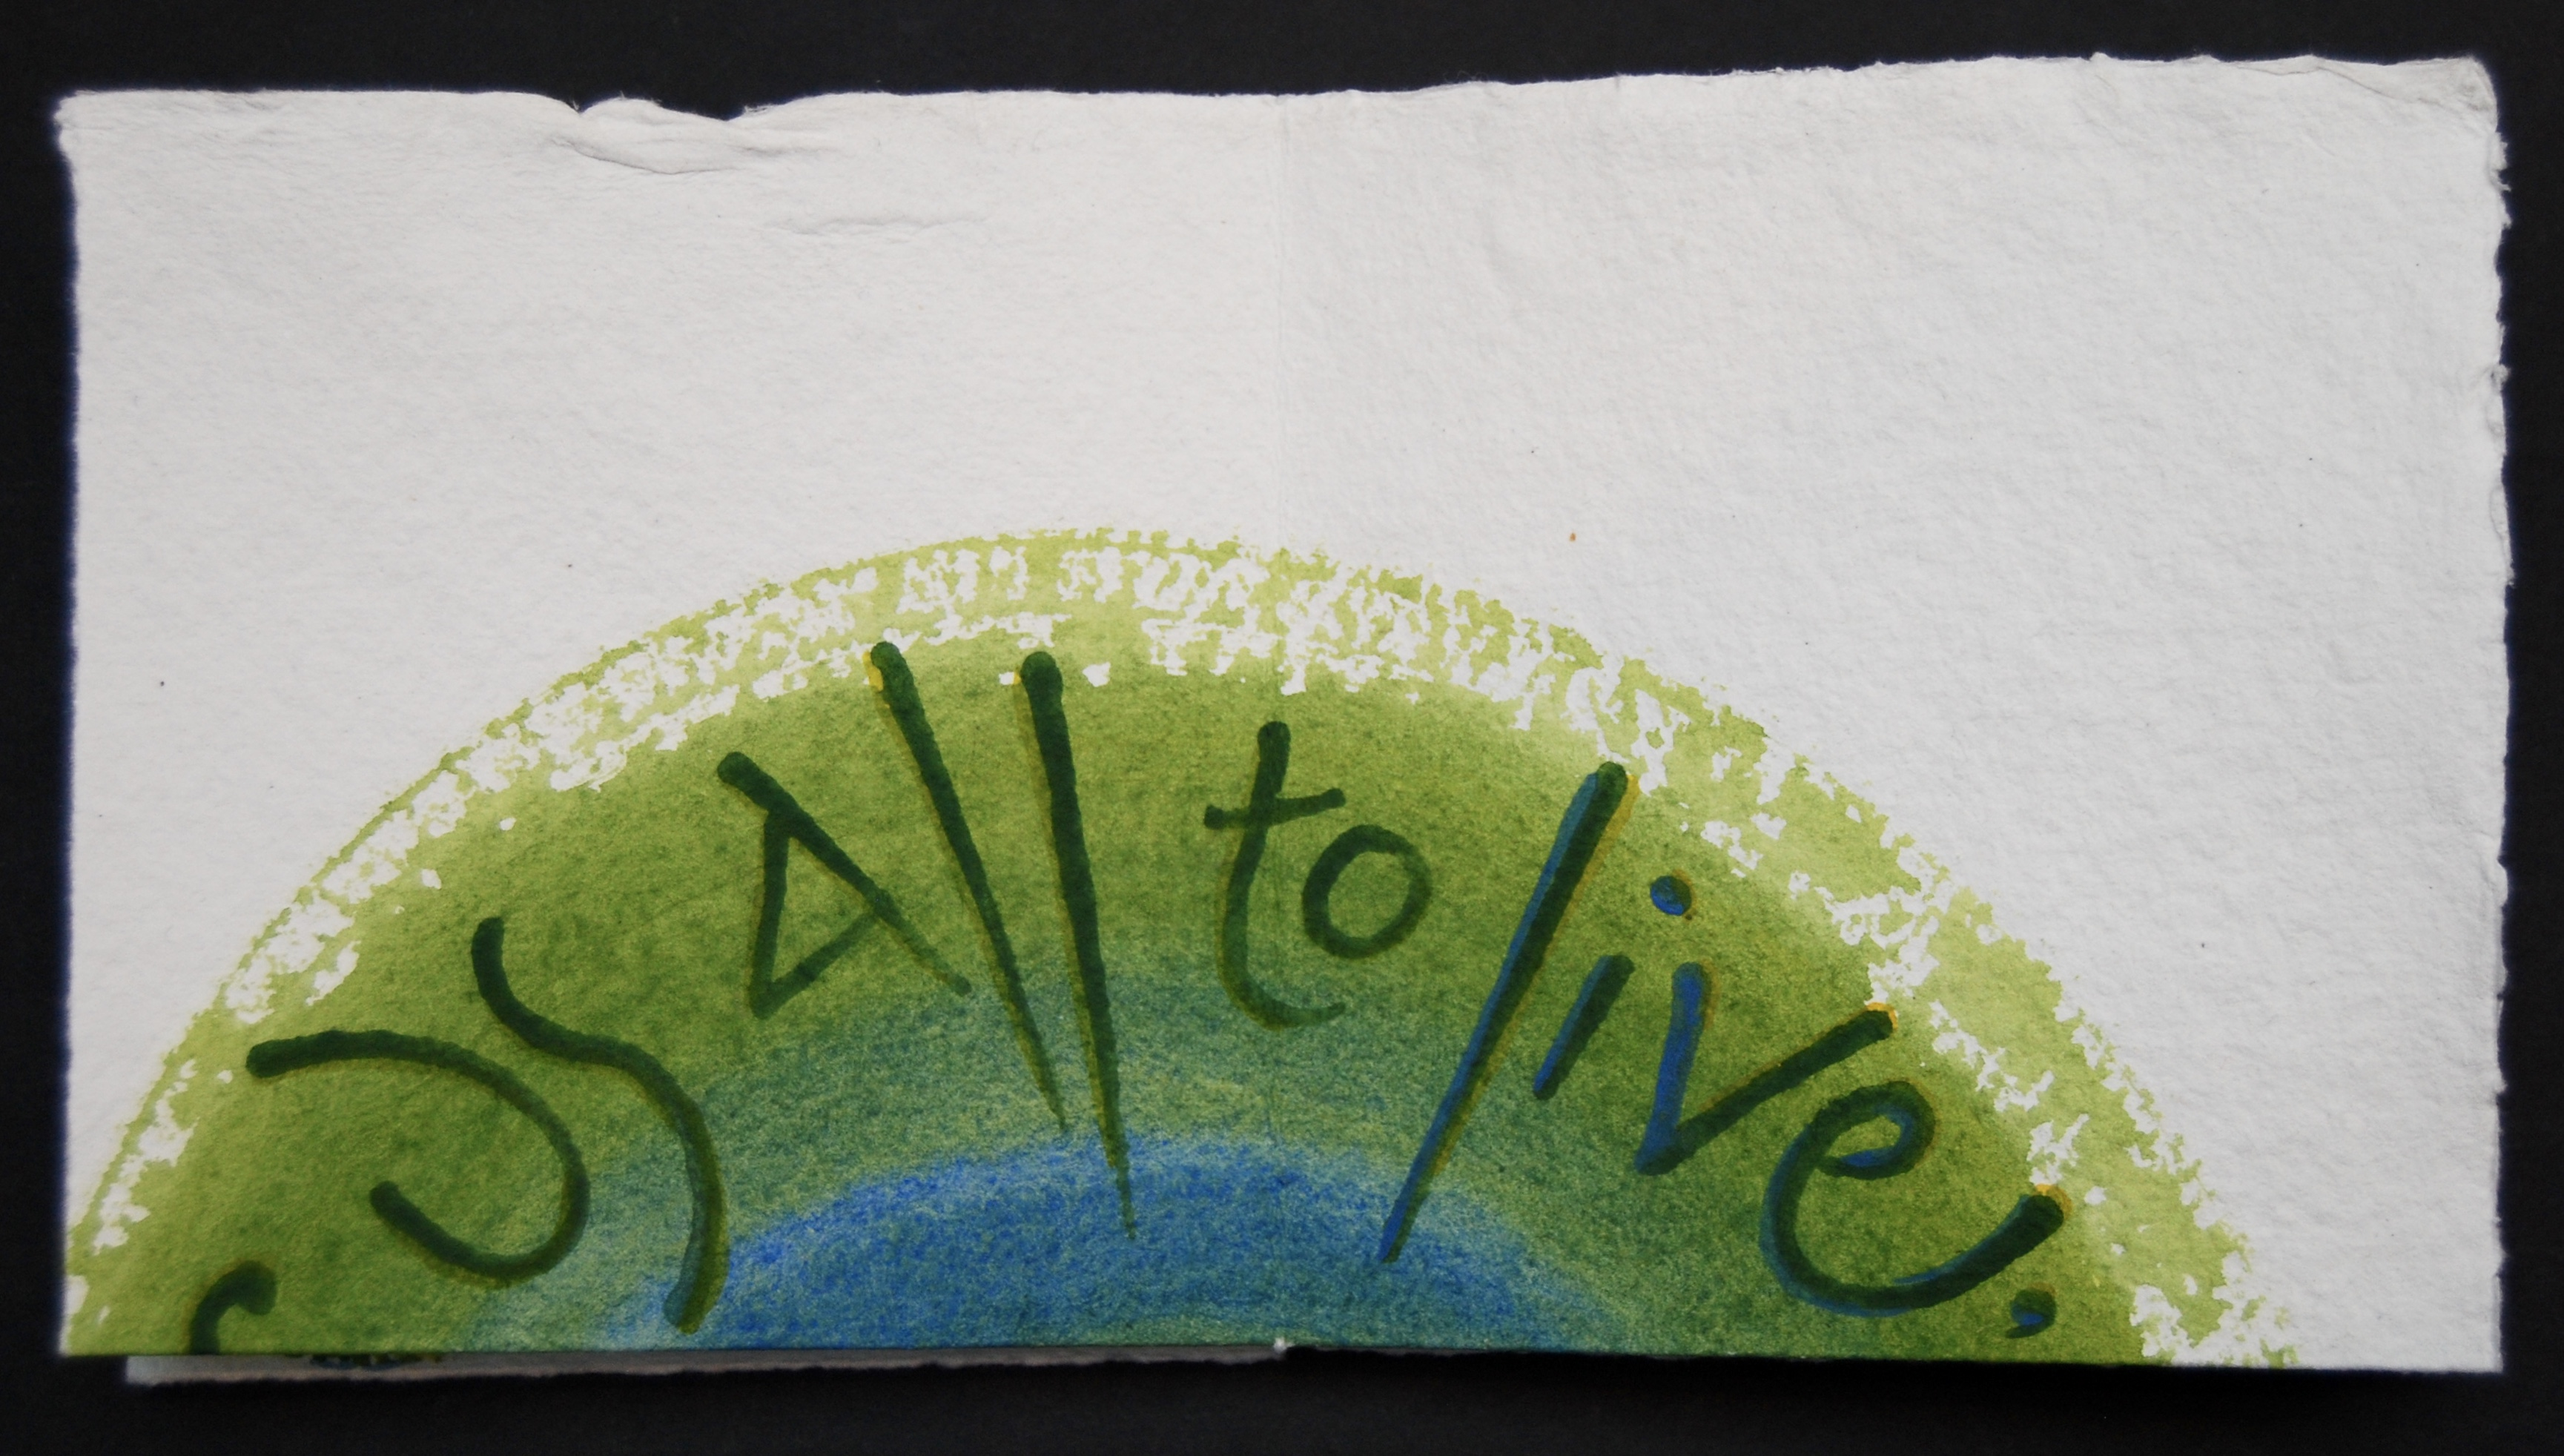 Page 2 of Proclaiming Spring, text by Maureen Duffy, artist's book by Liz Mathews